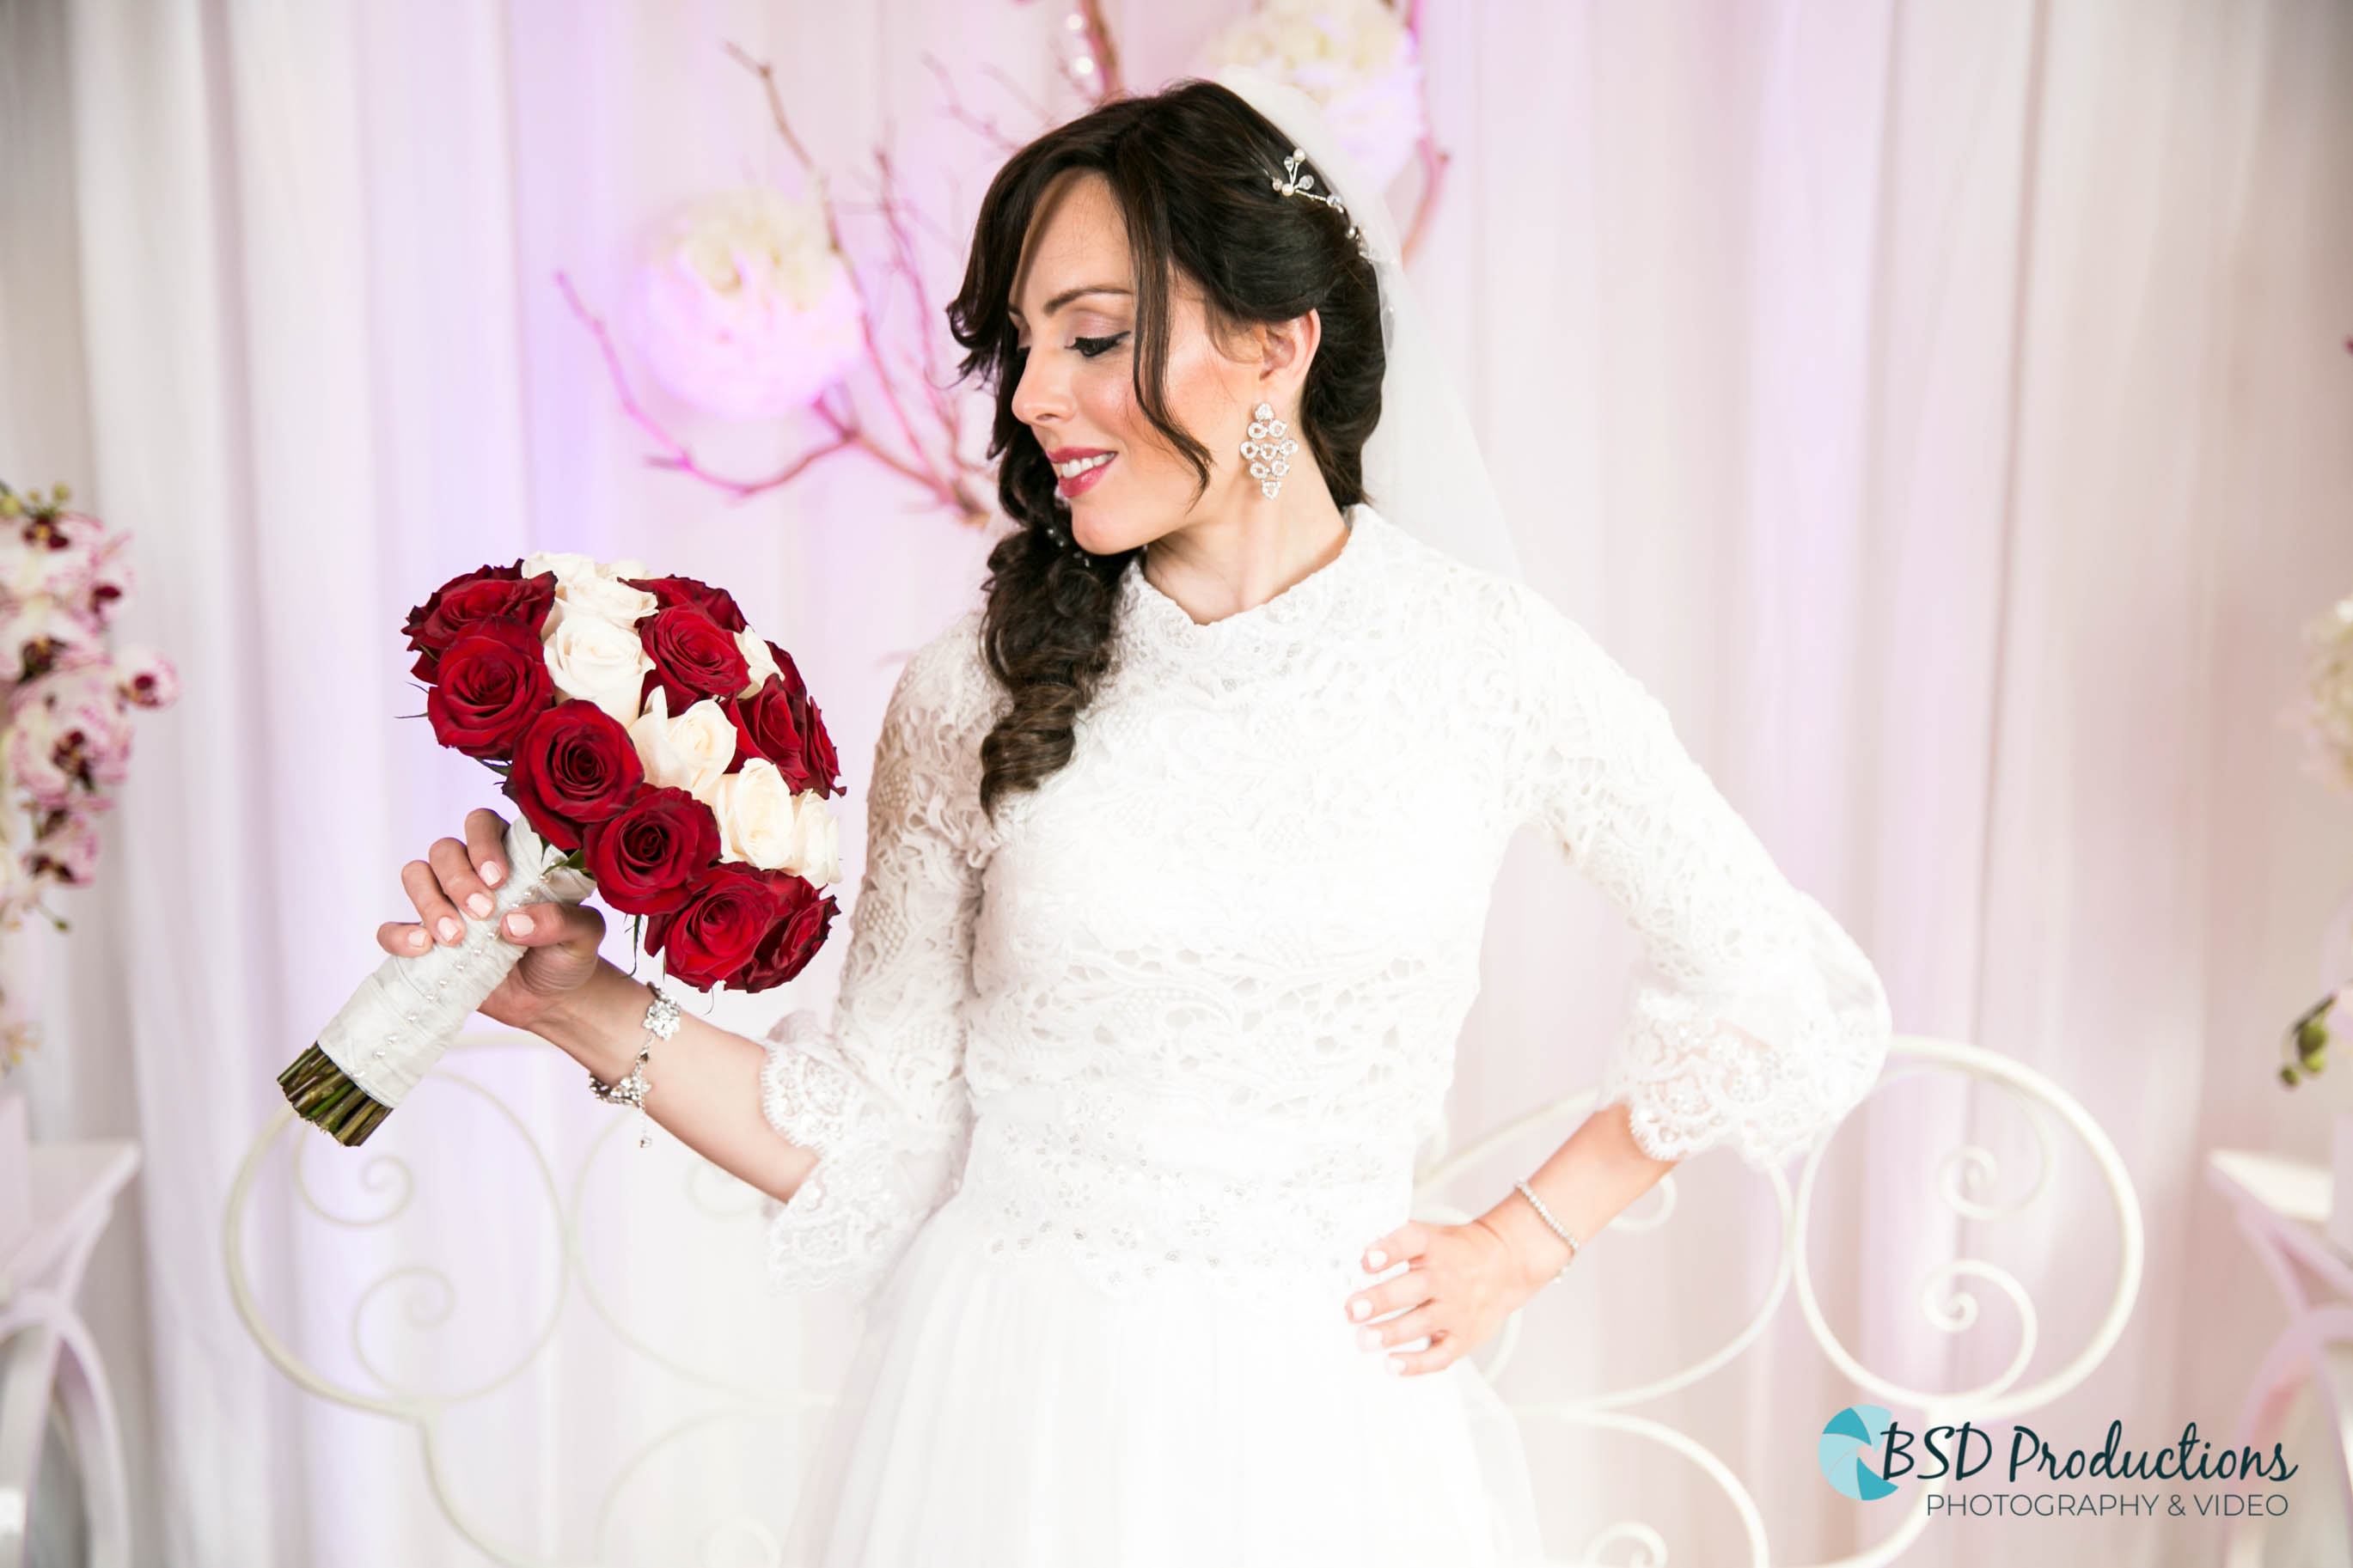 UH5A2460 Wedding – BSD Productions Photography